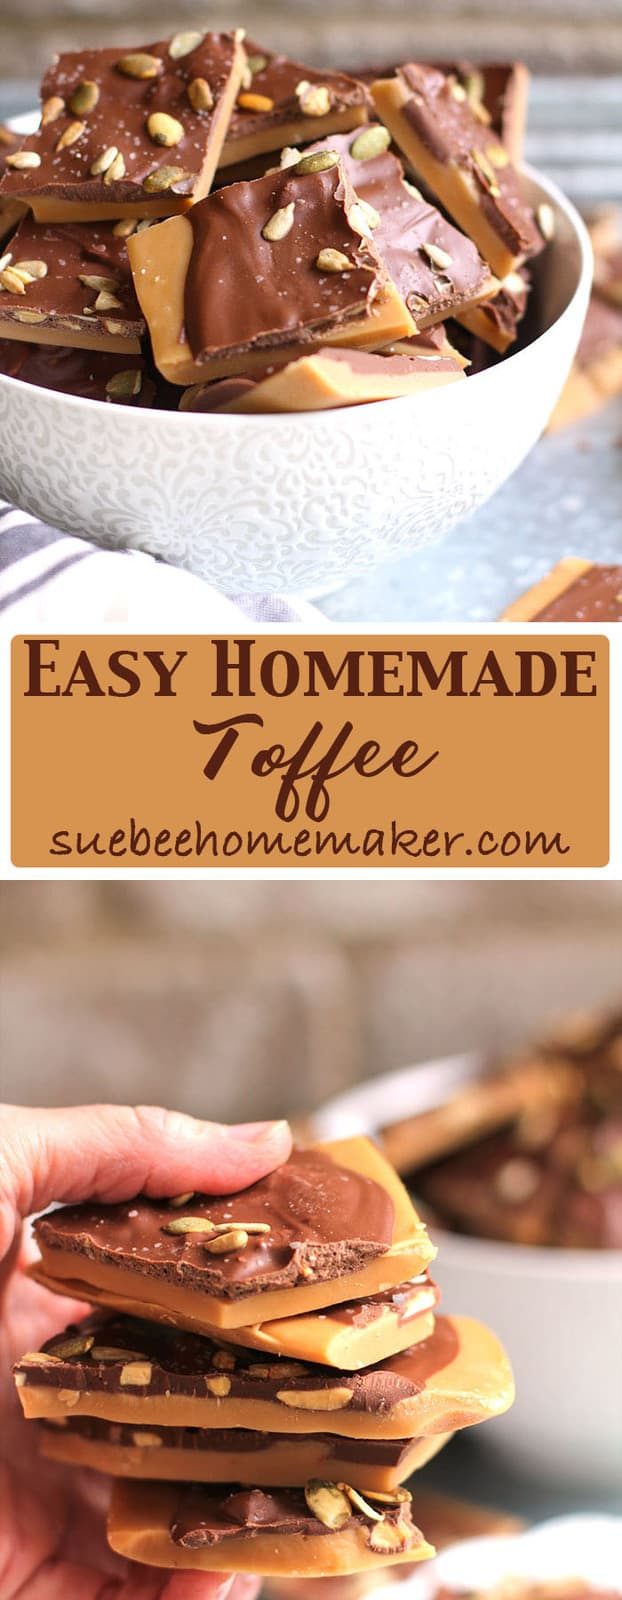 Easy Homemade Toffee is the ultimate holiday treat and reminds me of my mom, who made this every year. Only eight ingredients and patience necessary!   suebeehomemaker.com